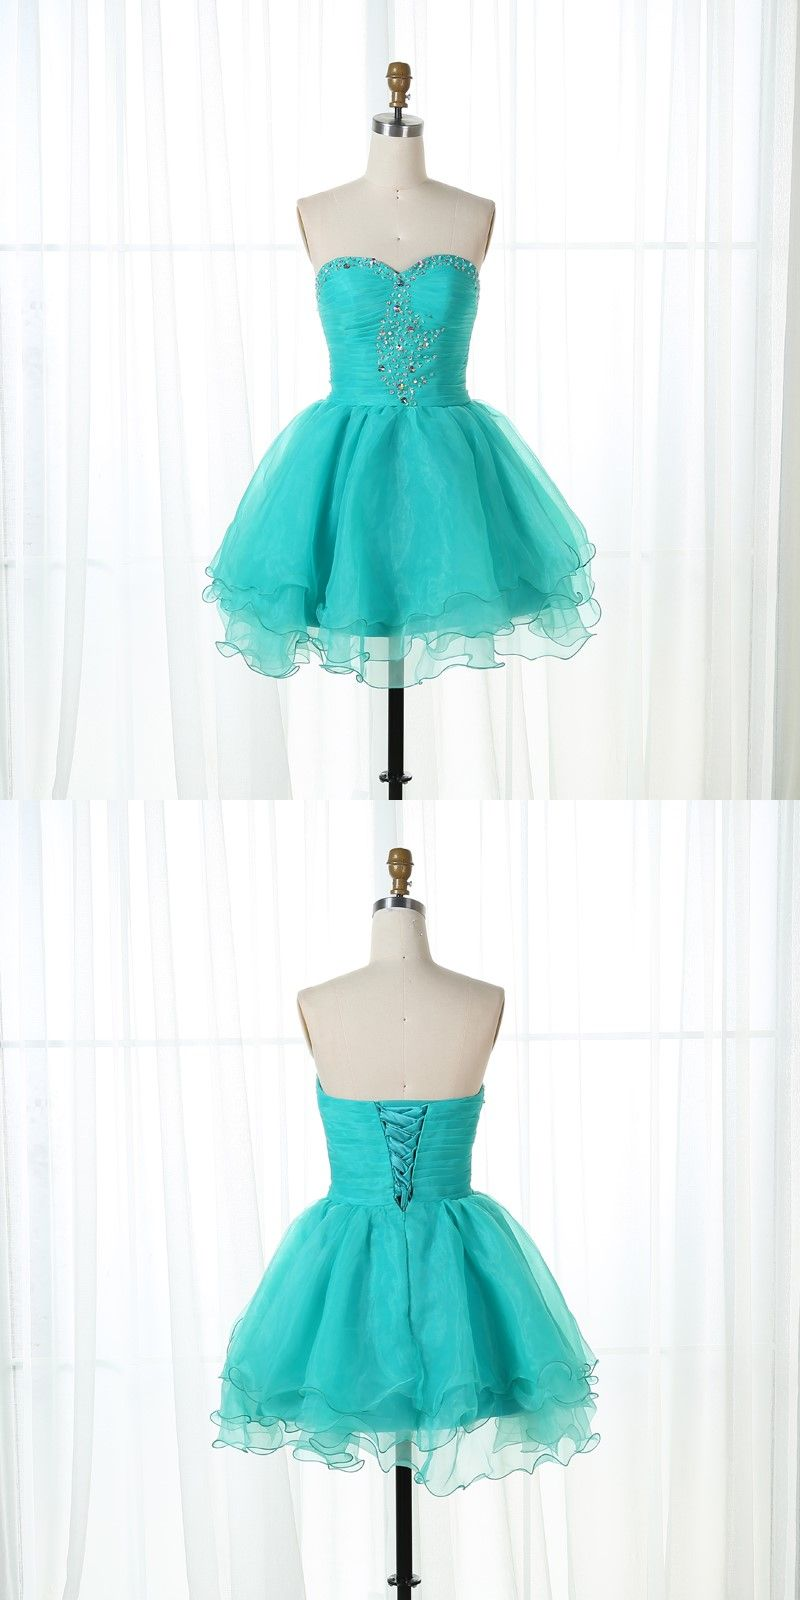 Aline sweetheart laceup green organza short homecoming dress with